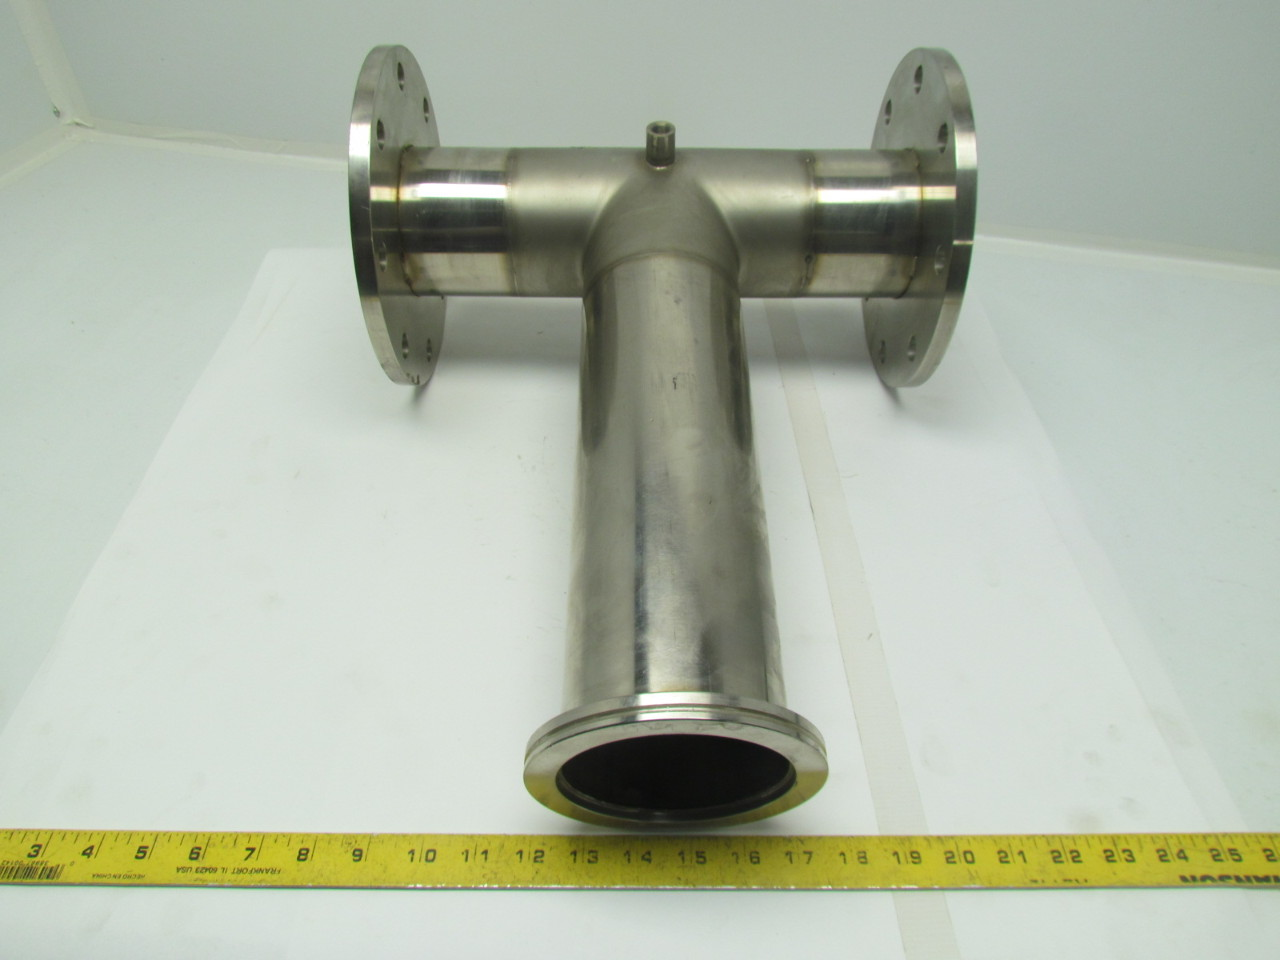 4 Quot Stainless Steel Sanitary Pipe Tee Fitting Assembly Ebay